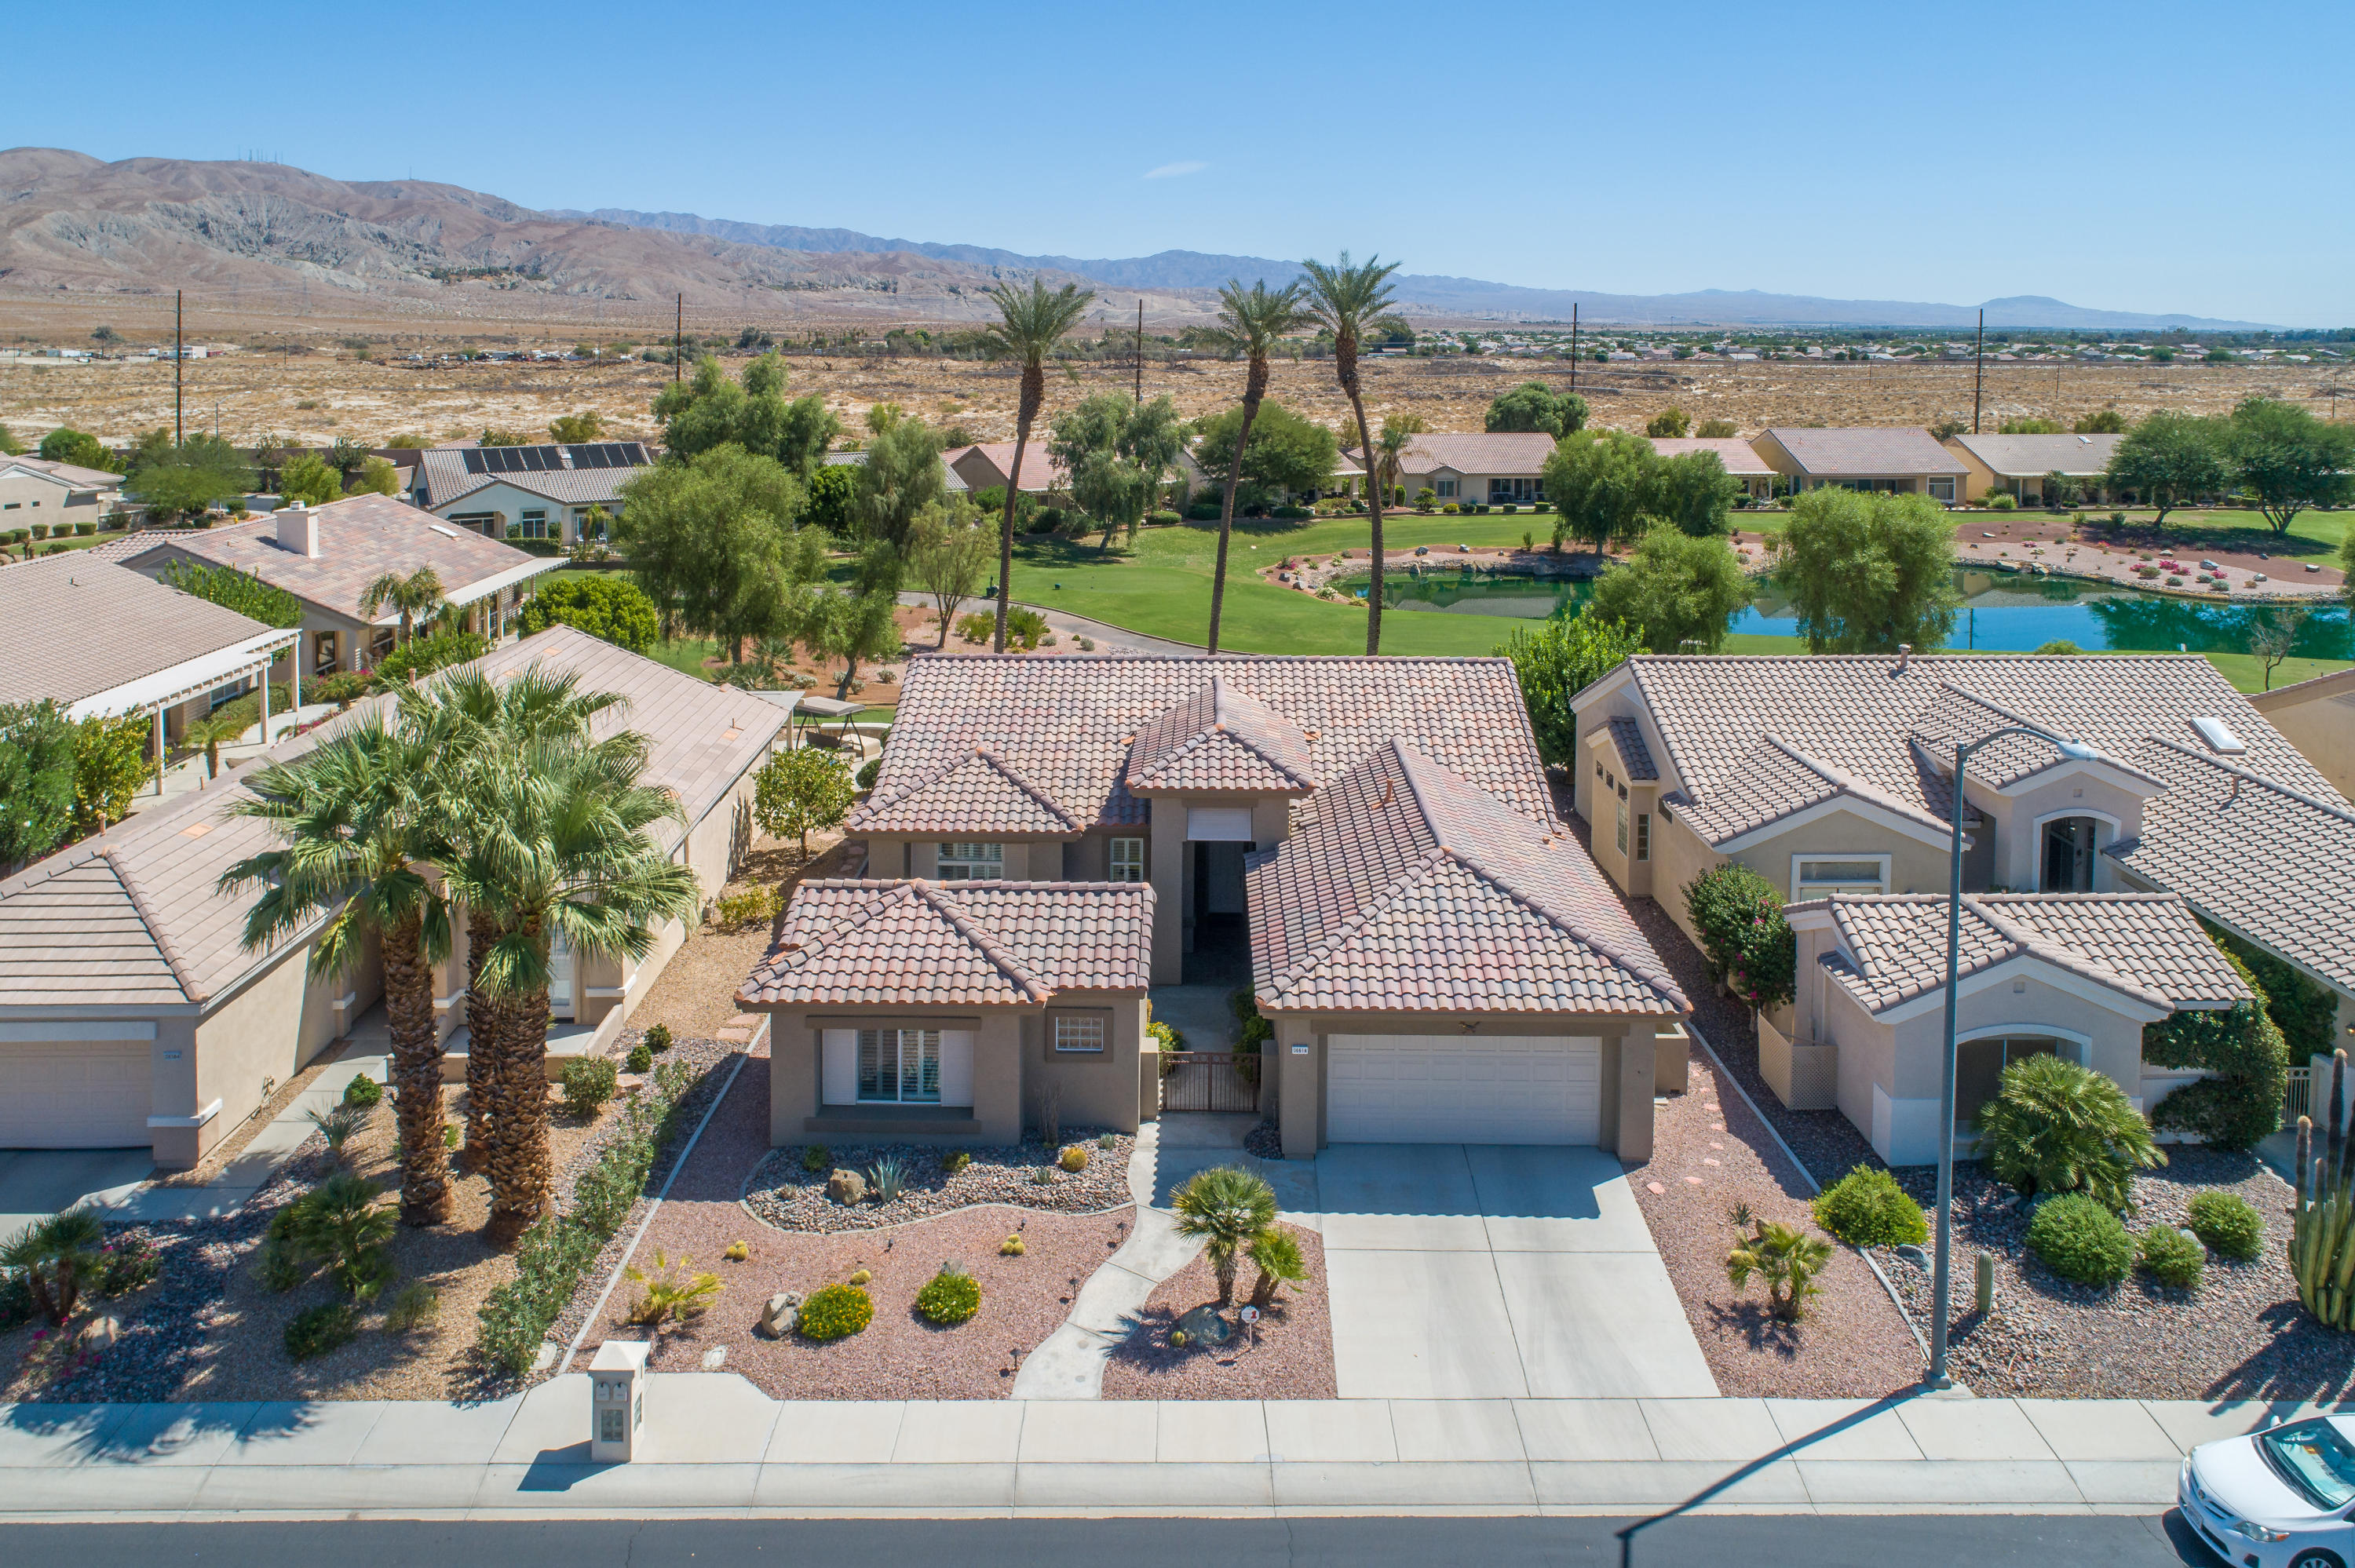 Photo of 36614 Emerald Cove, Palm Desert, CA 92211